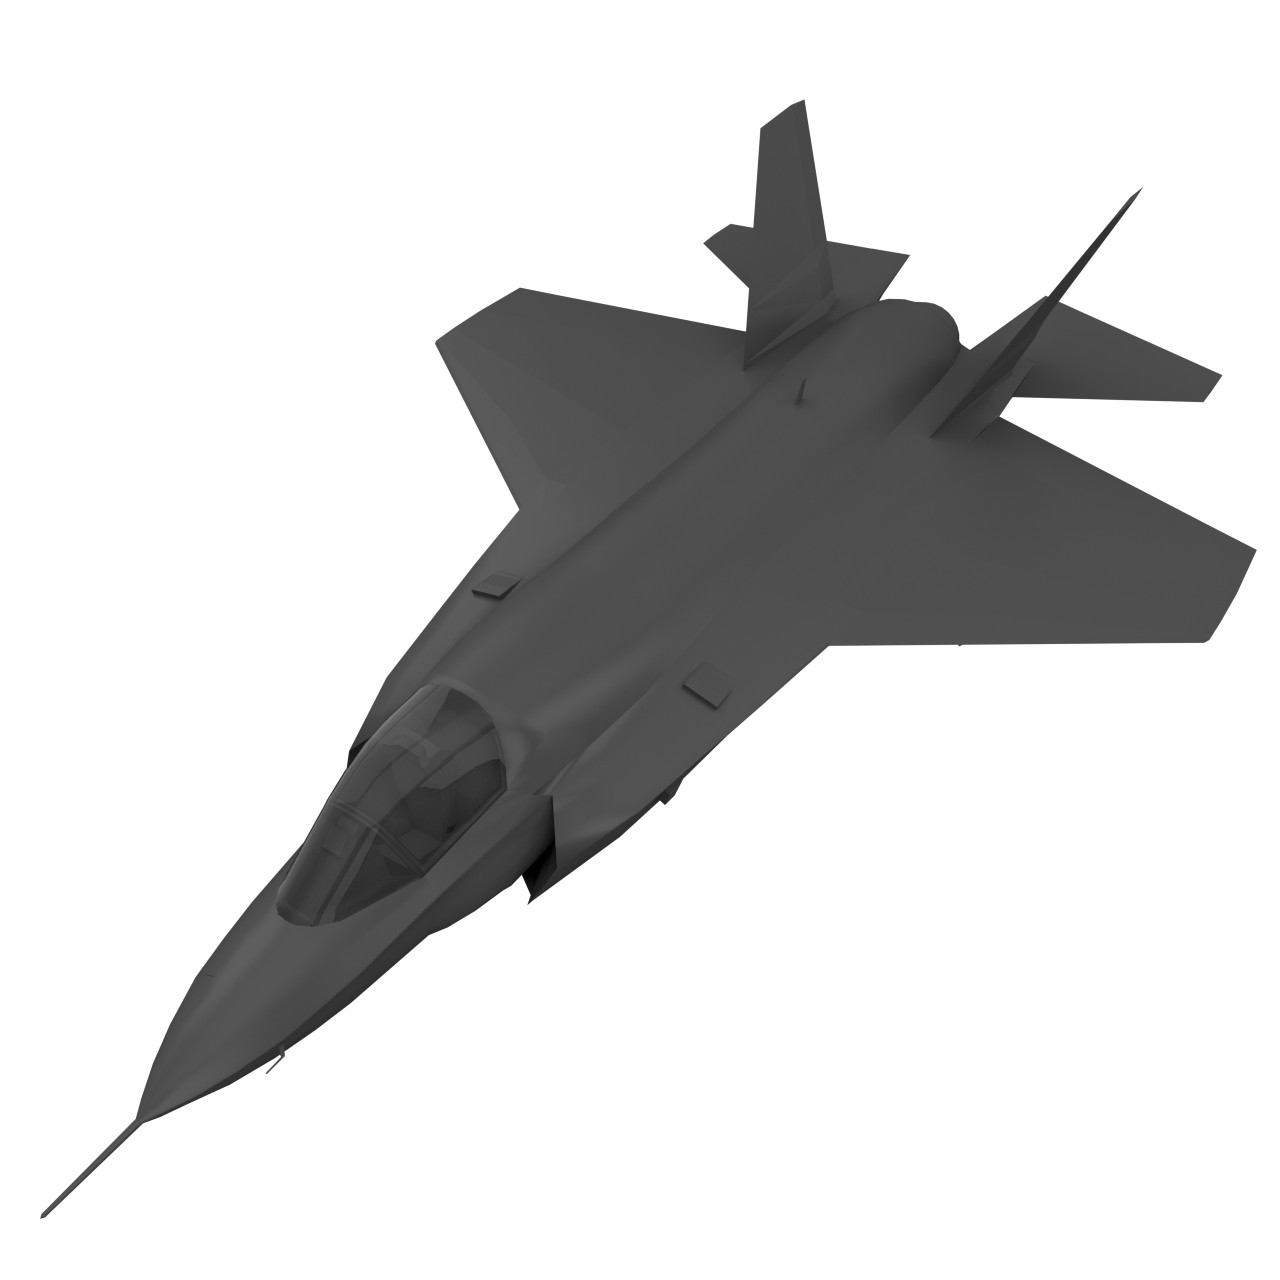 F-35 Lightning II fighter low poly game asset (UV-